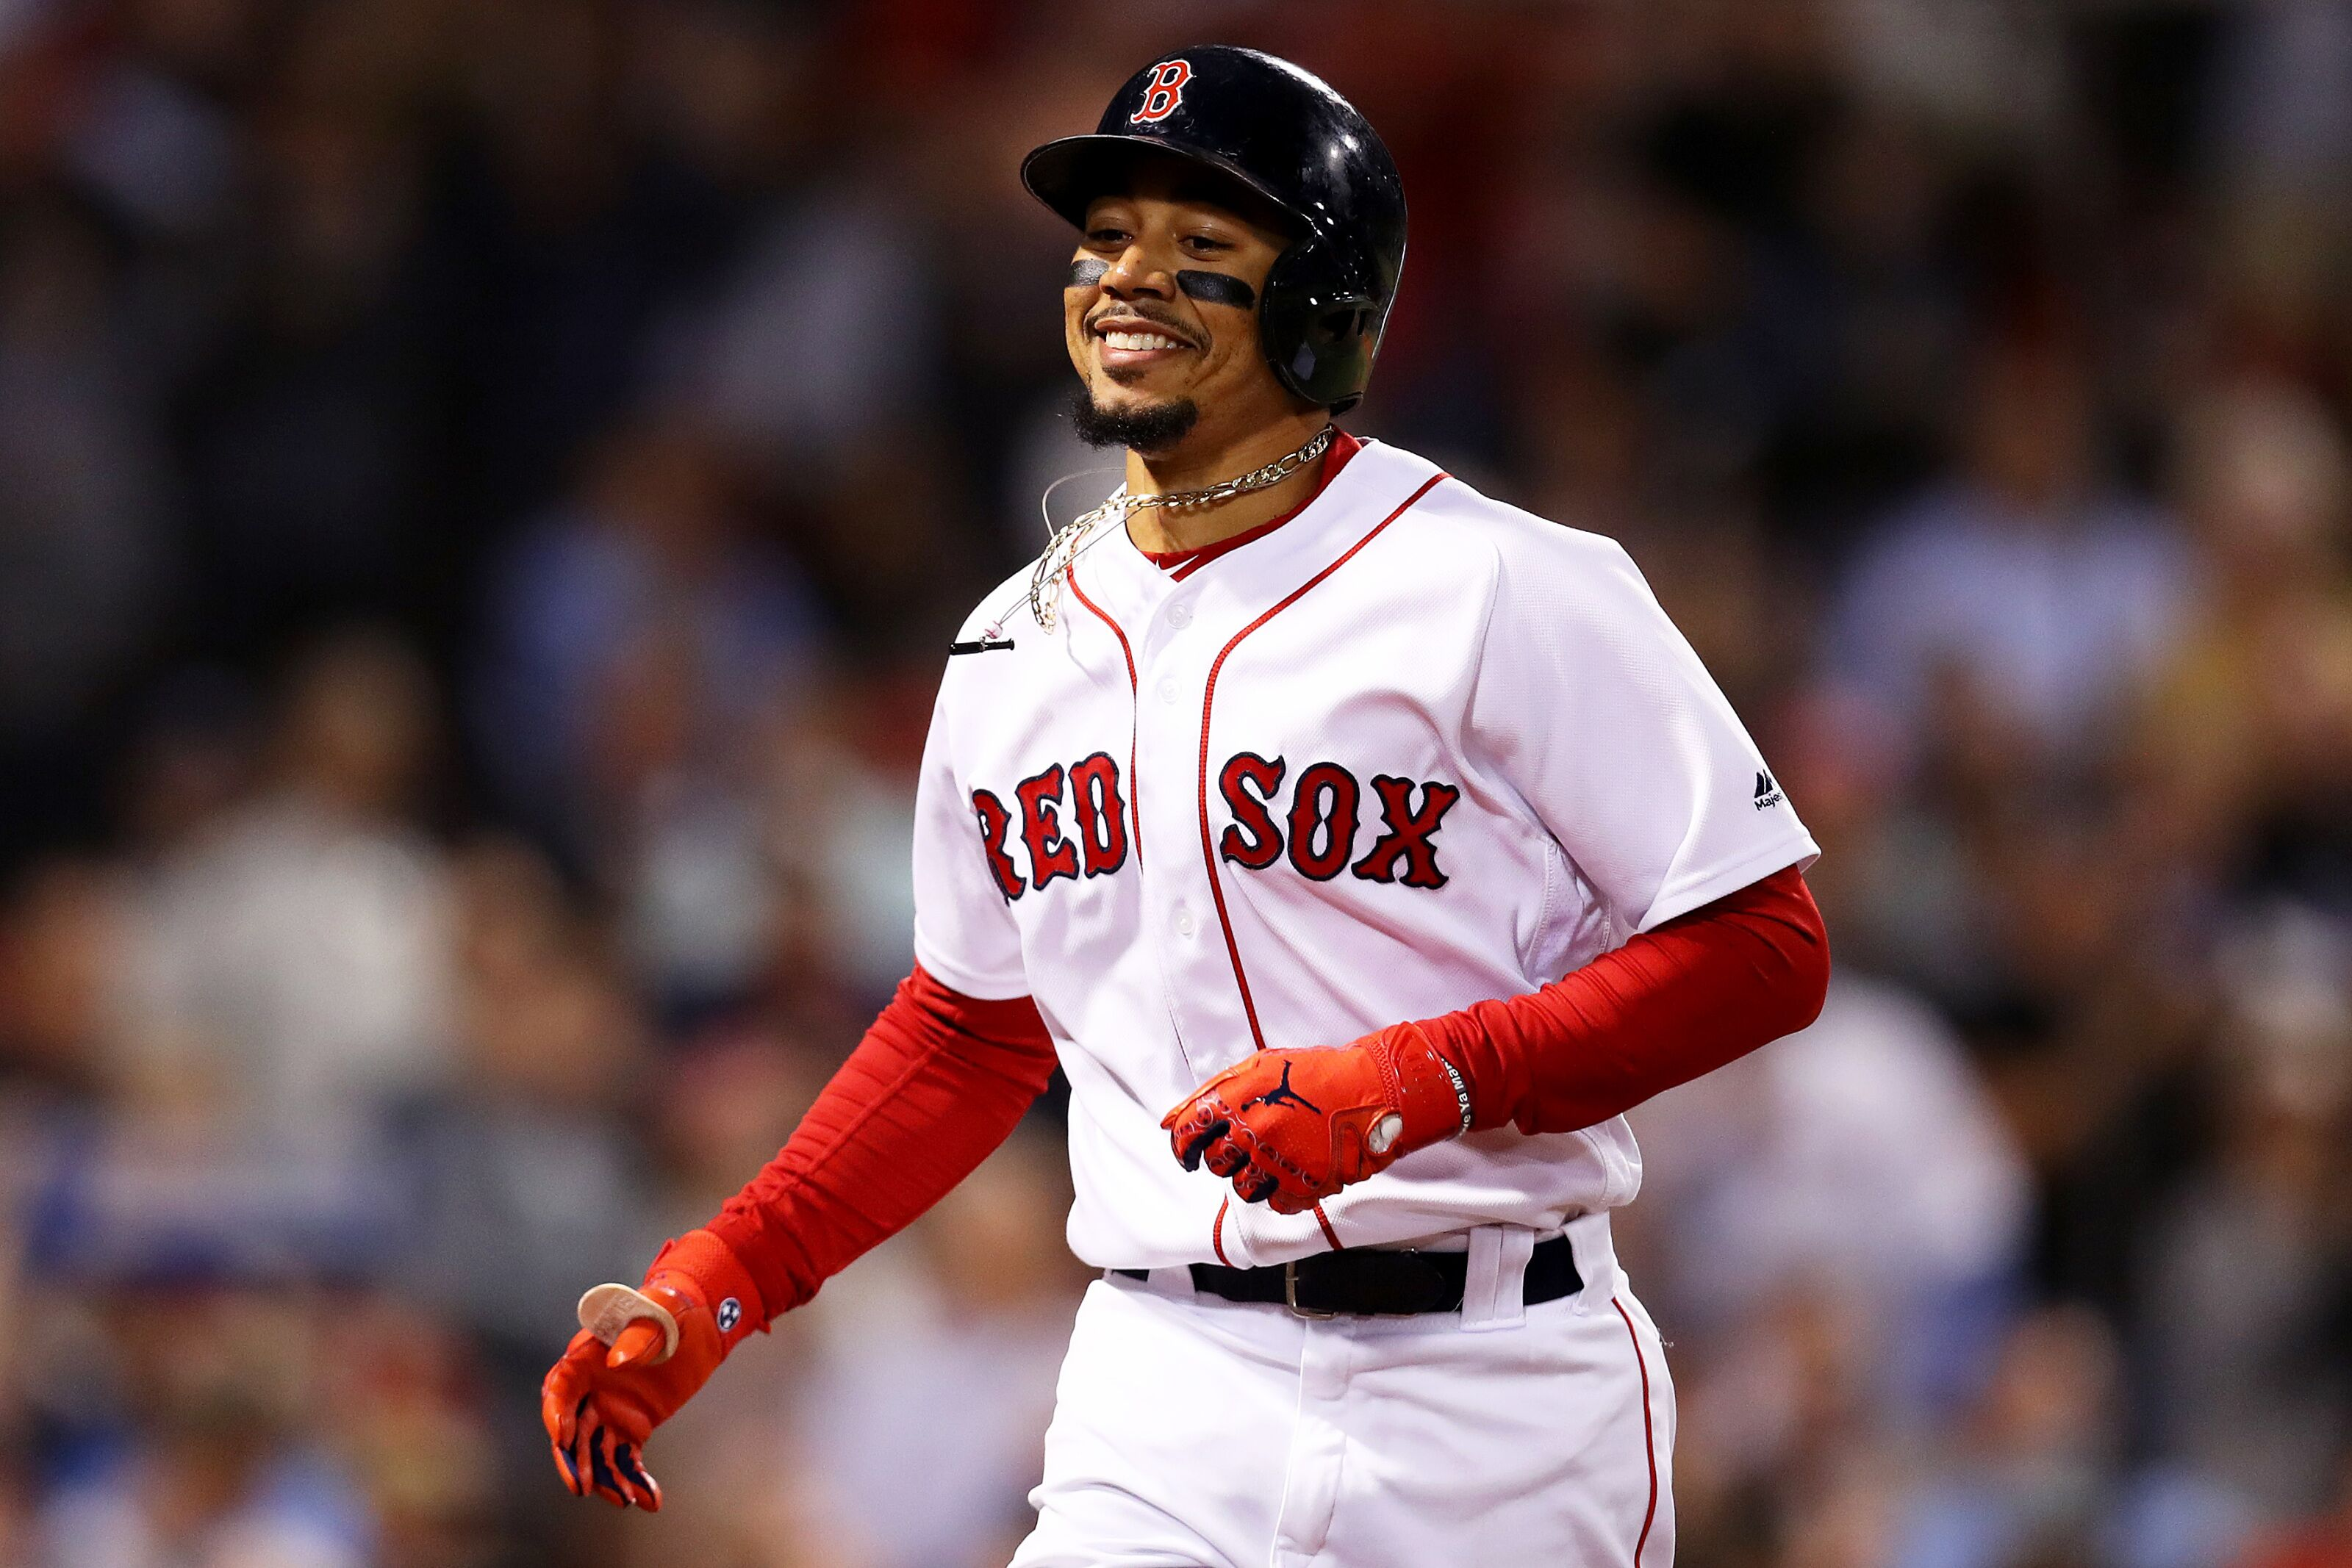 Red Sox Rumors: Mookie Betts trade offer from Padres hung up over money